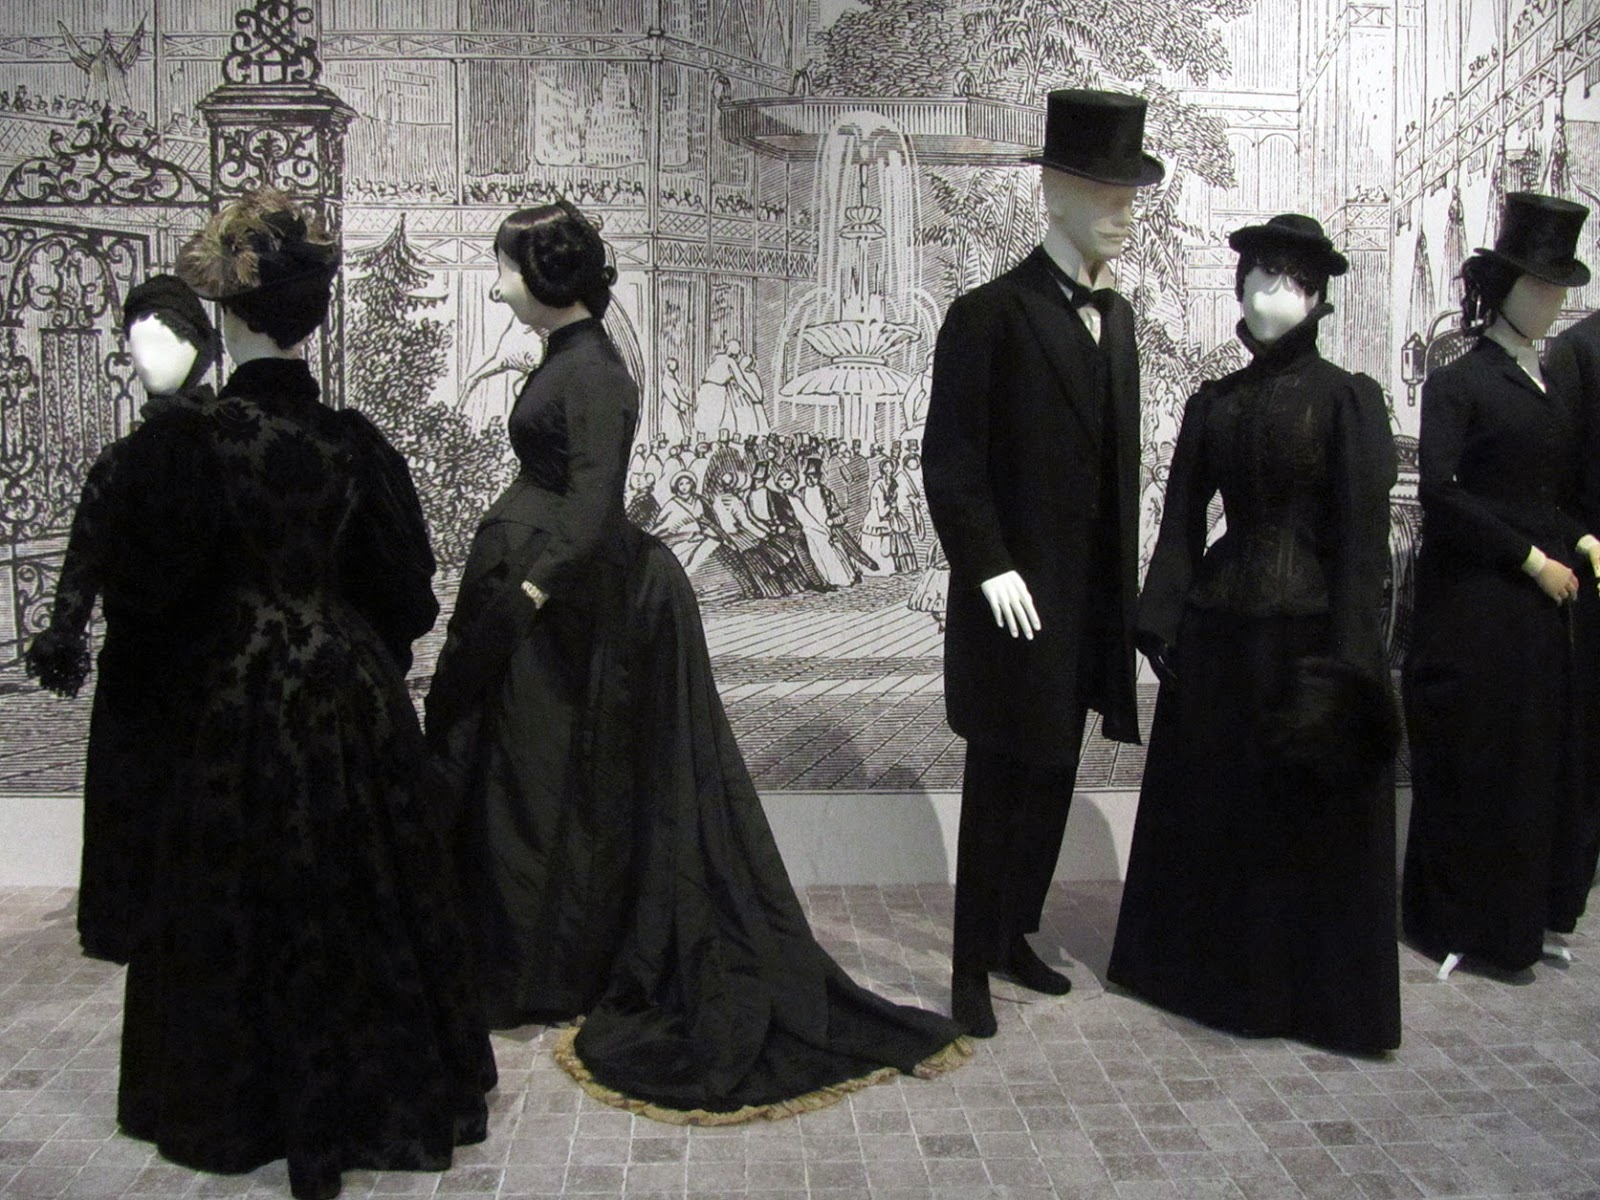 1880s: black gowns and suits